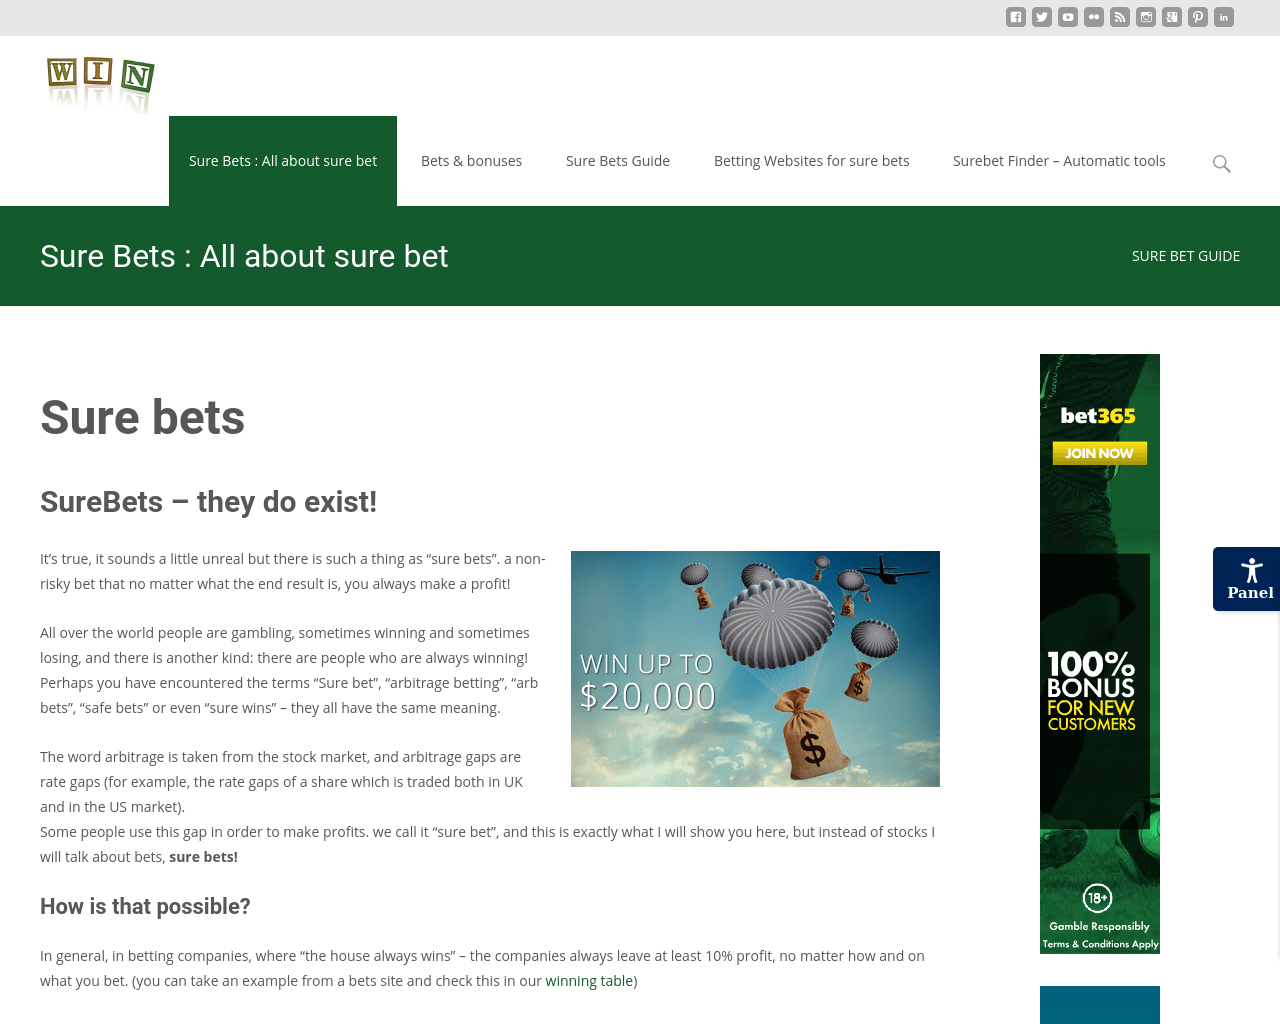 Sure-Bet-Guide-Advertising-Reviews-Pricing